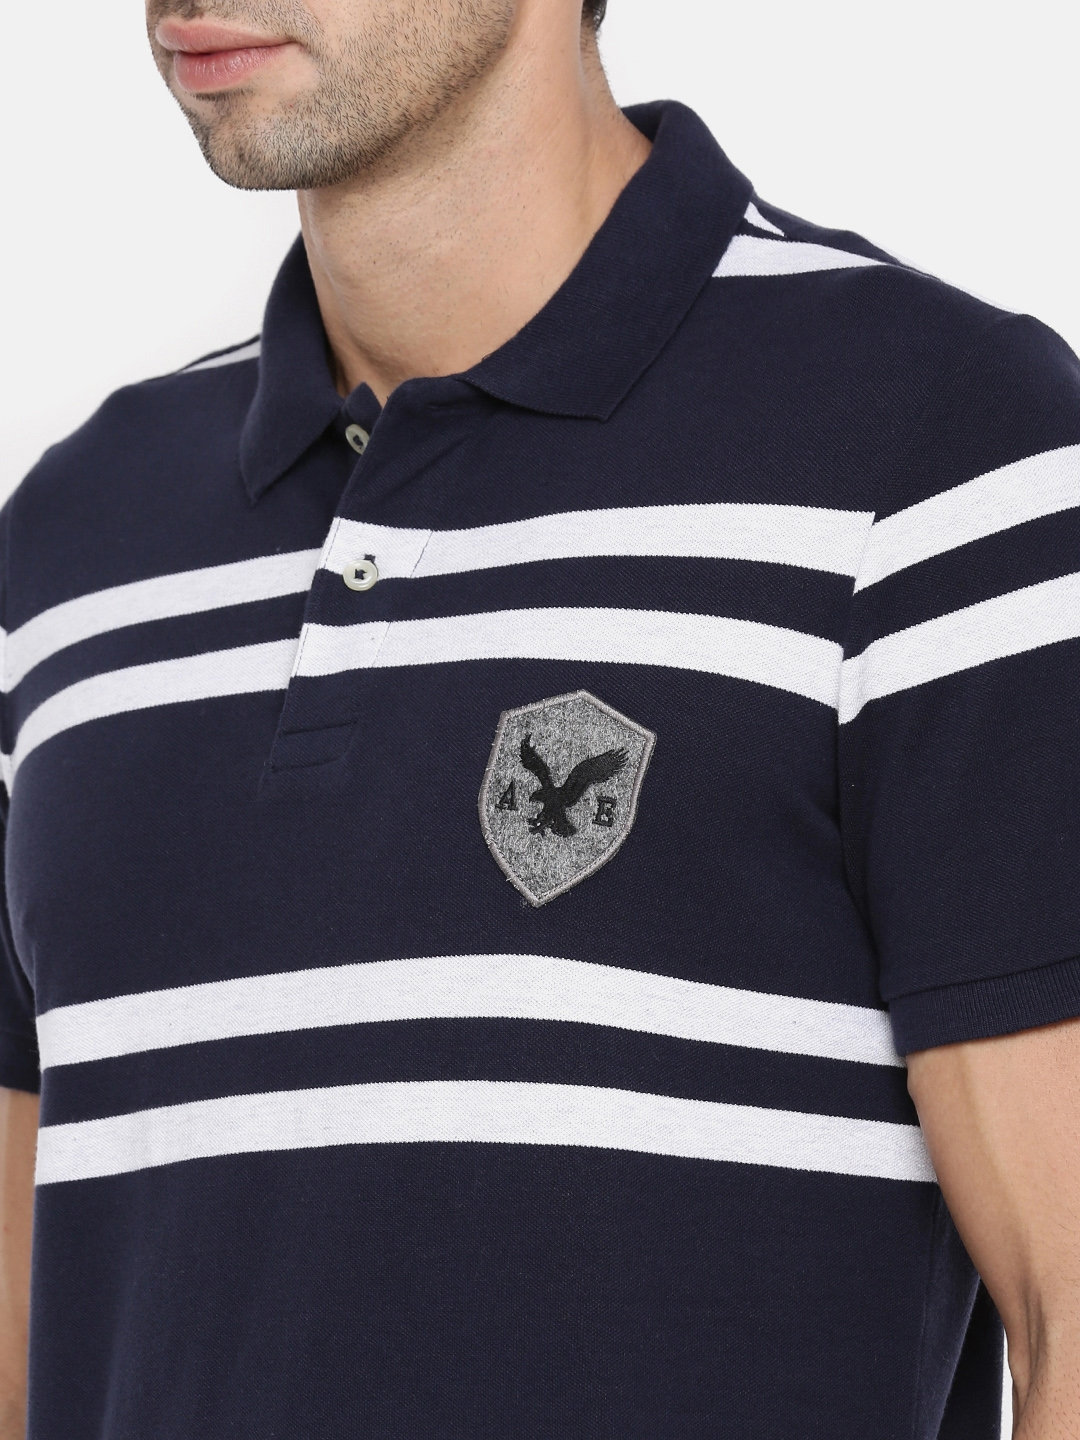 123561748f6 Buy AMERICAN EAGLE OUTFITTERS Men Navy Blue Striped Polo Collar T ...